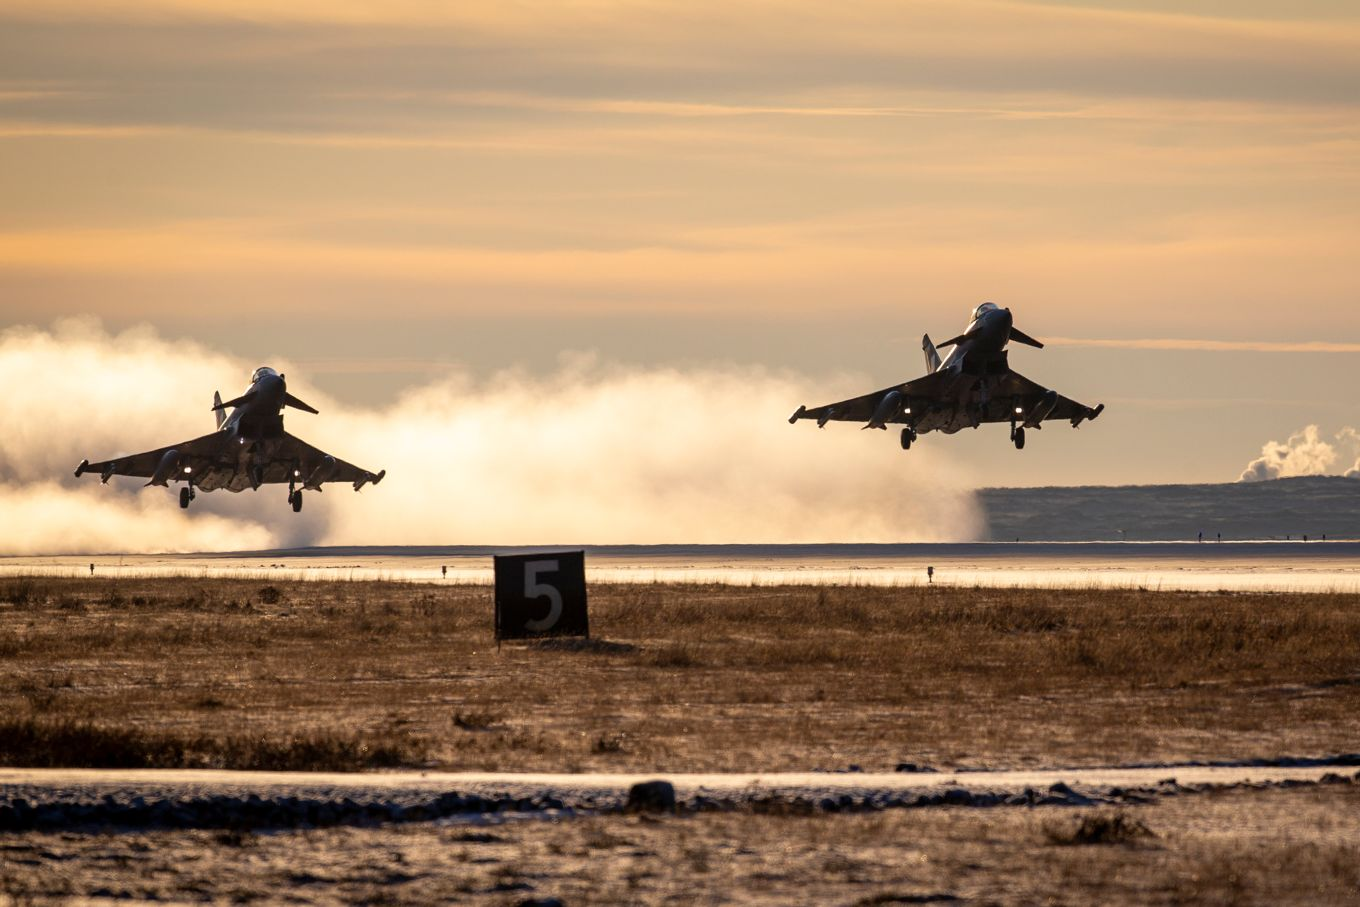 Two 1(F) Squadron Eurofighter Typhoon FGR4s take-off from Keflavik Air Base as part of the NATO Icelandic Air Policing mission